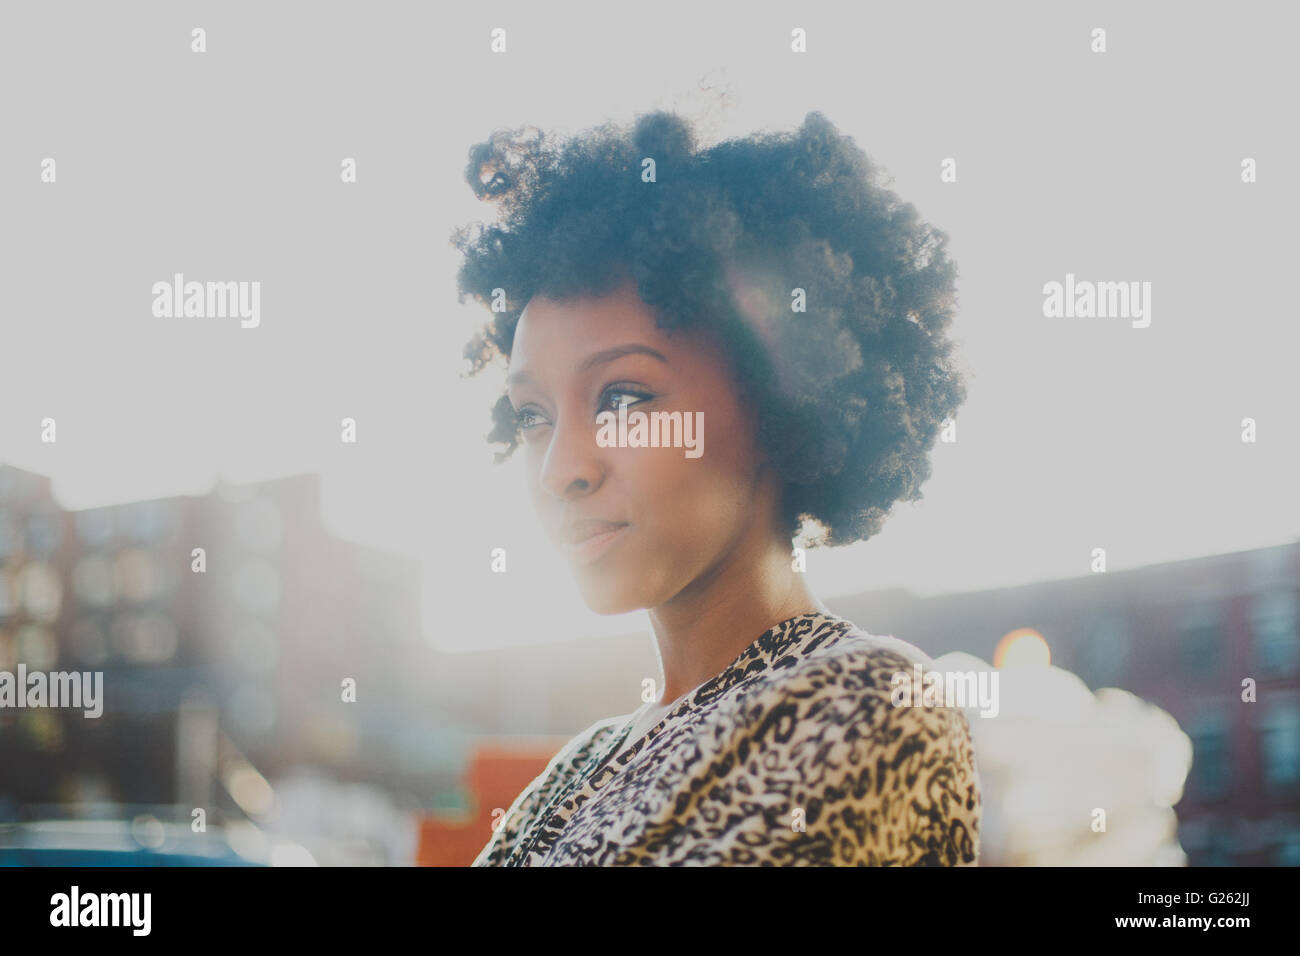 Jeune femme avec afro smiling in urban setting Photo Stock